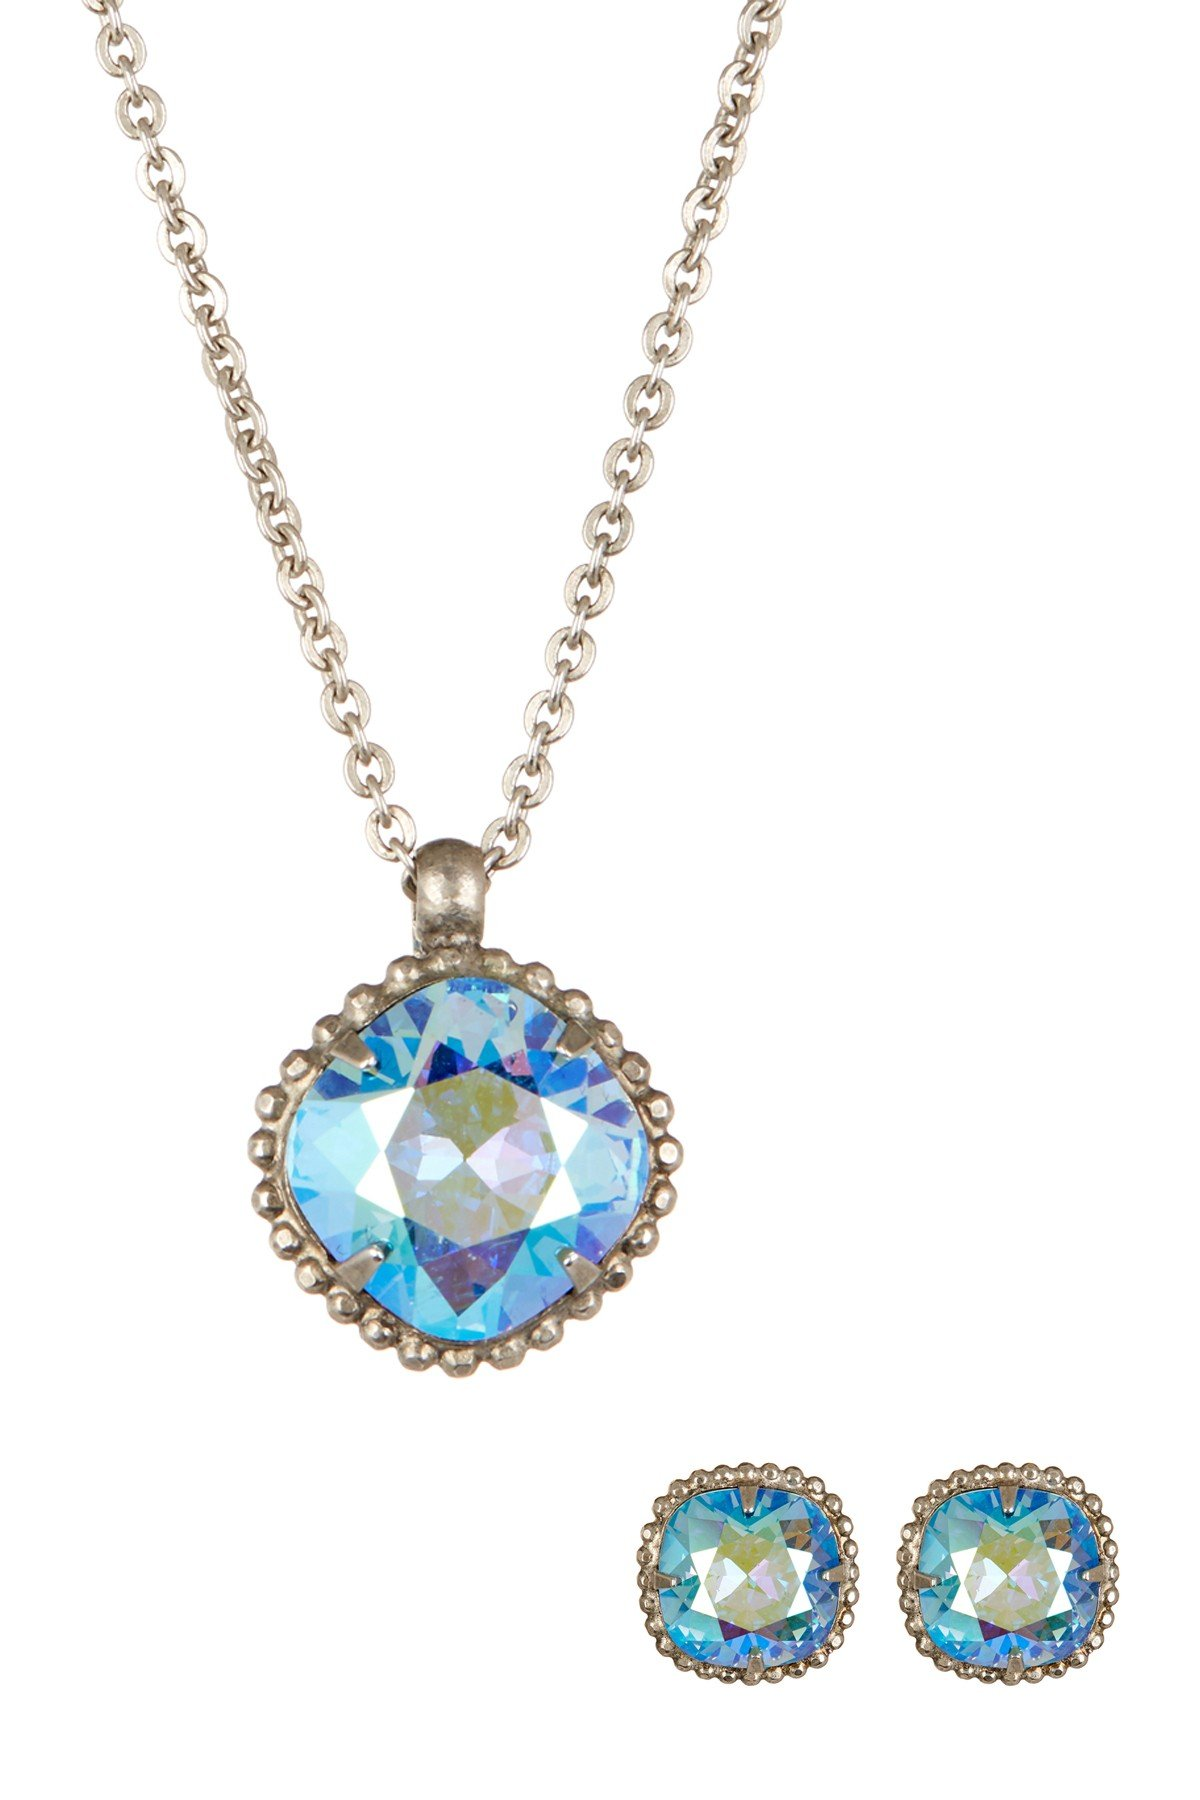 SORRELLI ELECTRIC BLUE Swarovski Framed Crystal Stud Earrings & Pendant Necklace Gift Set